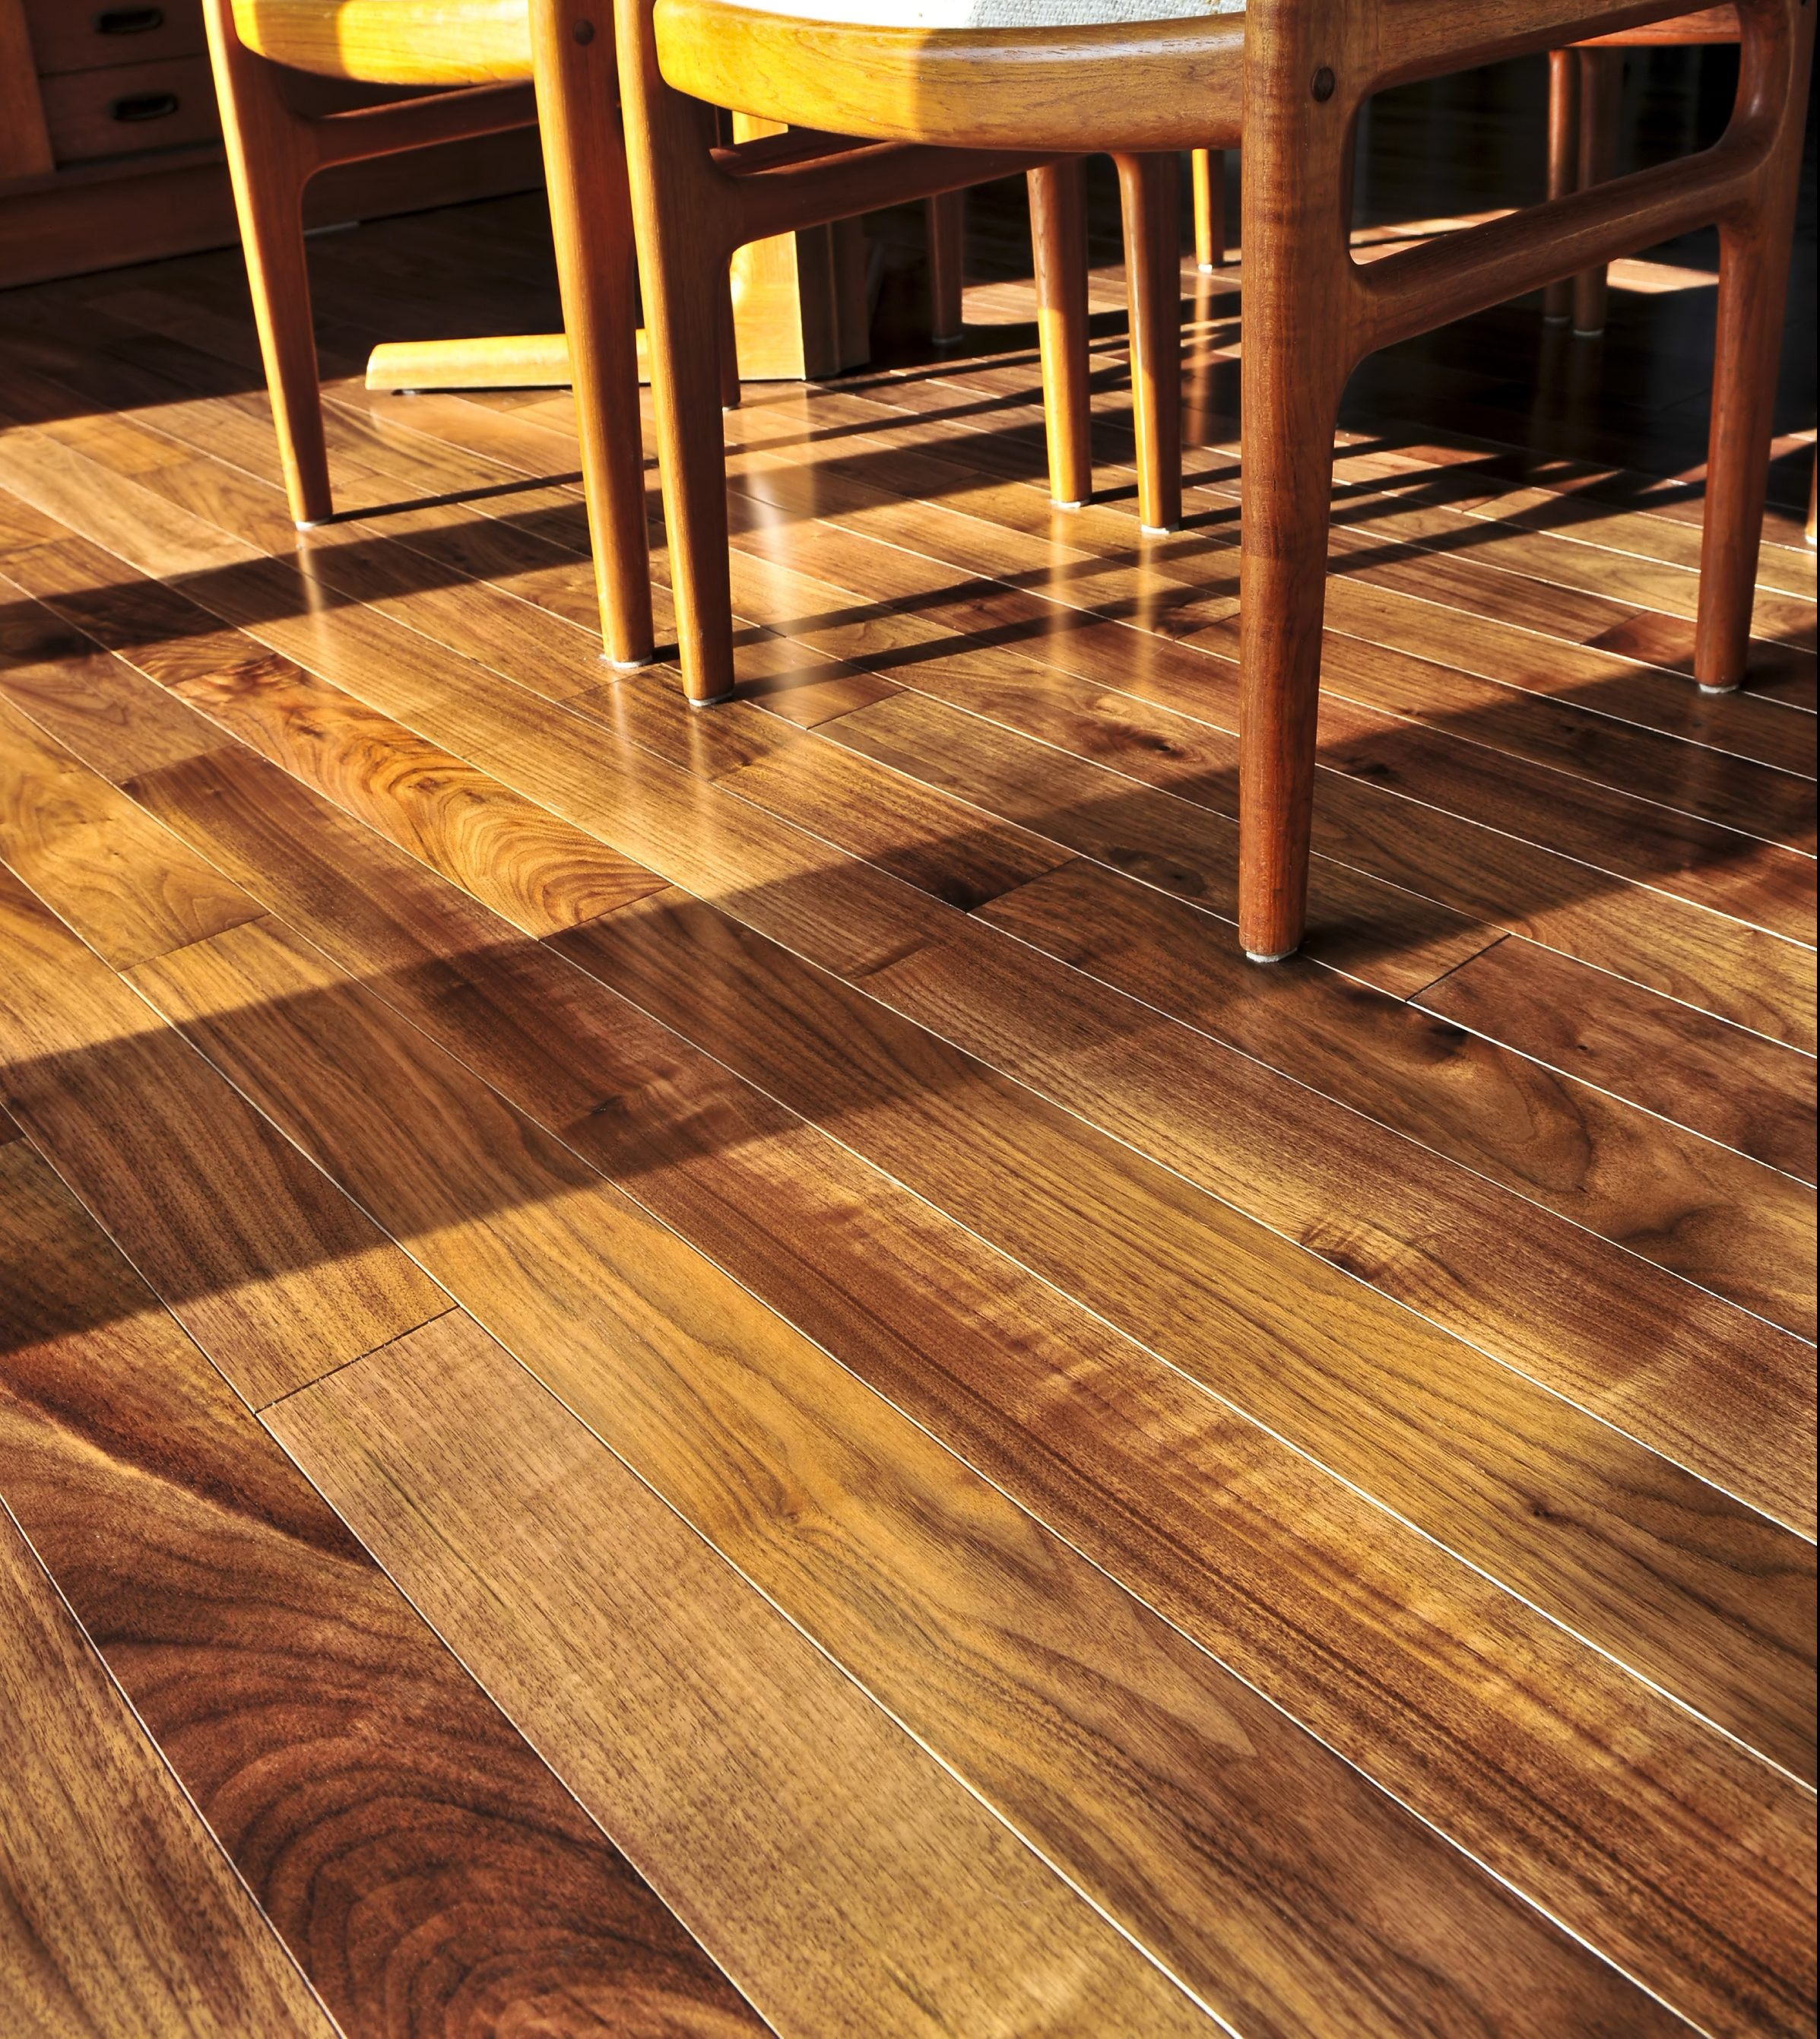 Floor Wood What Causes Buckling And Cupping In Wood Floors